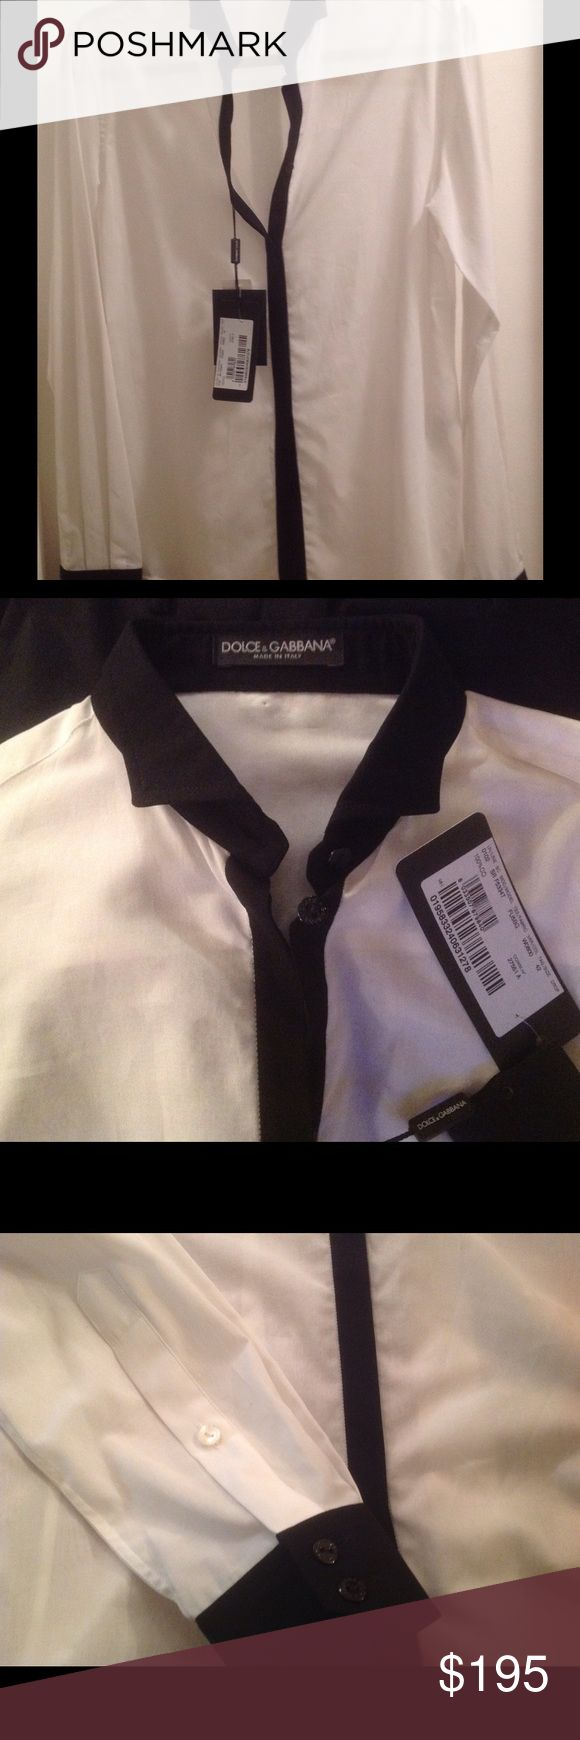 Dolce and Gabbana white and black tuxedo shirt Beautiful cotton shirt by Dolce and Gabbana. Shirt has black tuxedo collar, black cuffs and button line on front! ❤️ Shirt is authentic and brand new! Fabric is very thin and see trough! ❤️ Buttoning is invisible!😊☀️☘🌙Priced to sell! ❤️ 💐☘For exact measurements please refer to official Dolce and Gabbana website! Dolce & Gabbana Tops Button Down Shirts